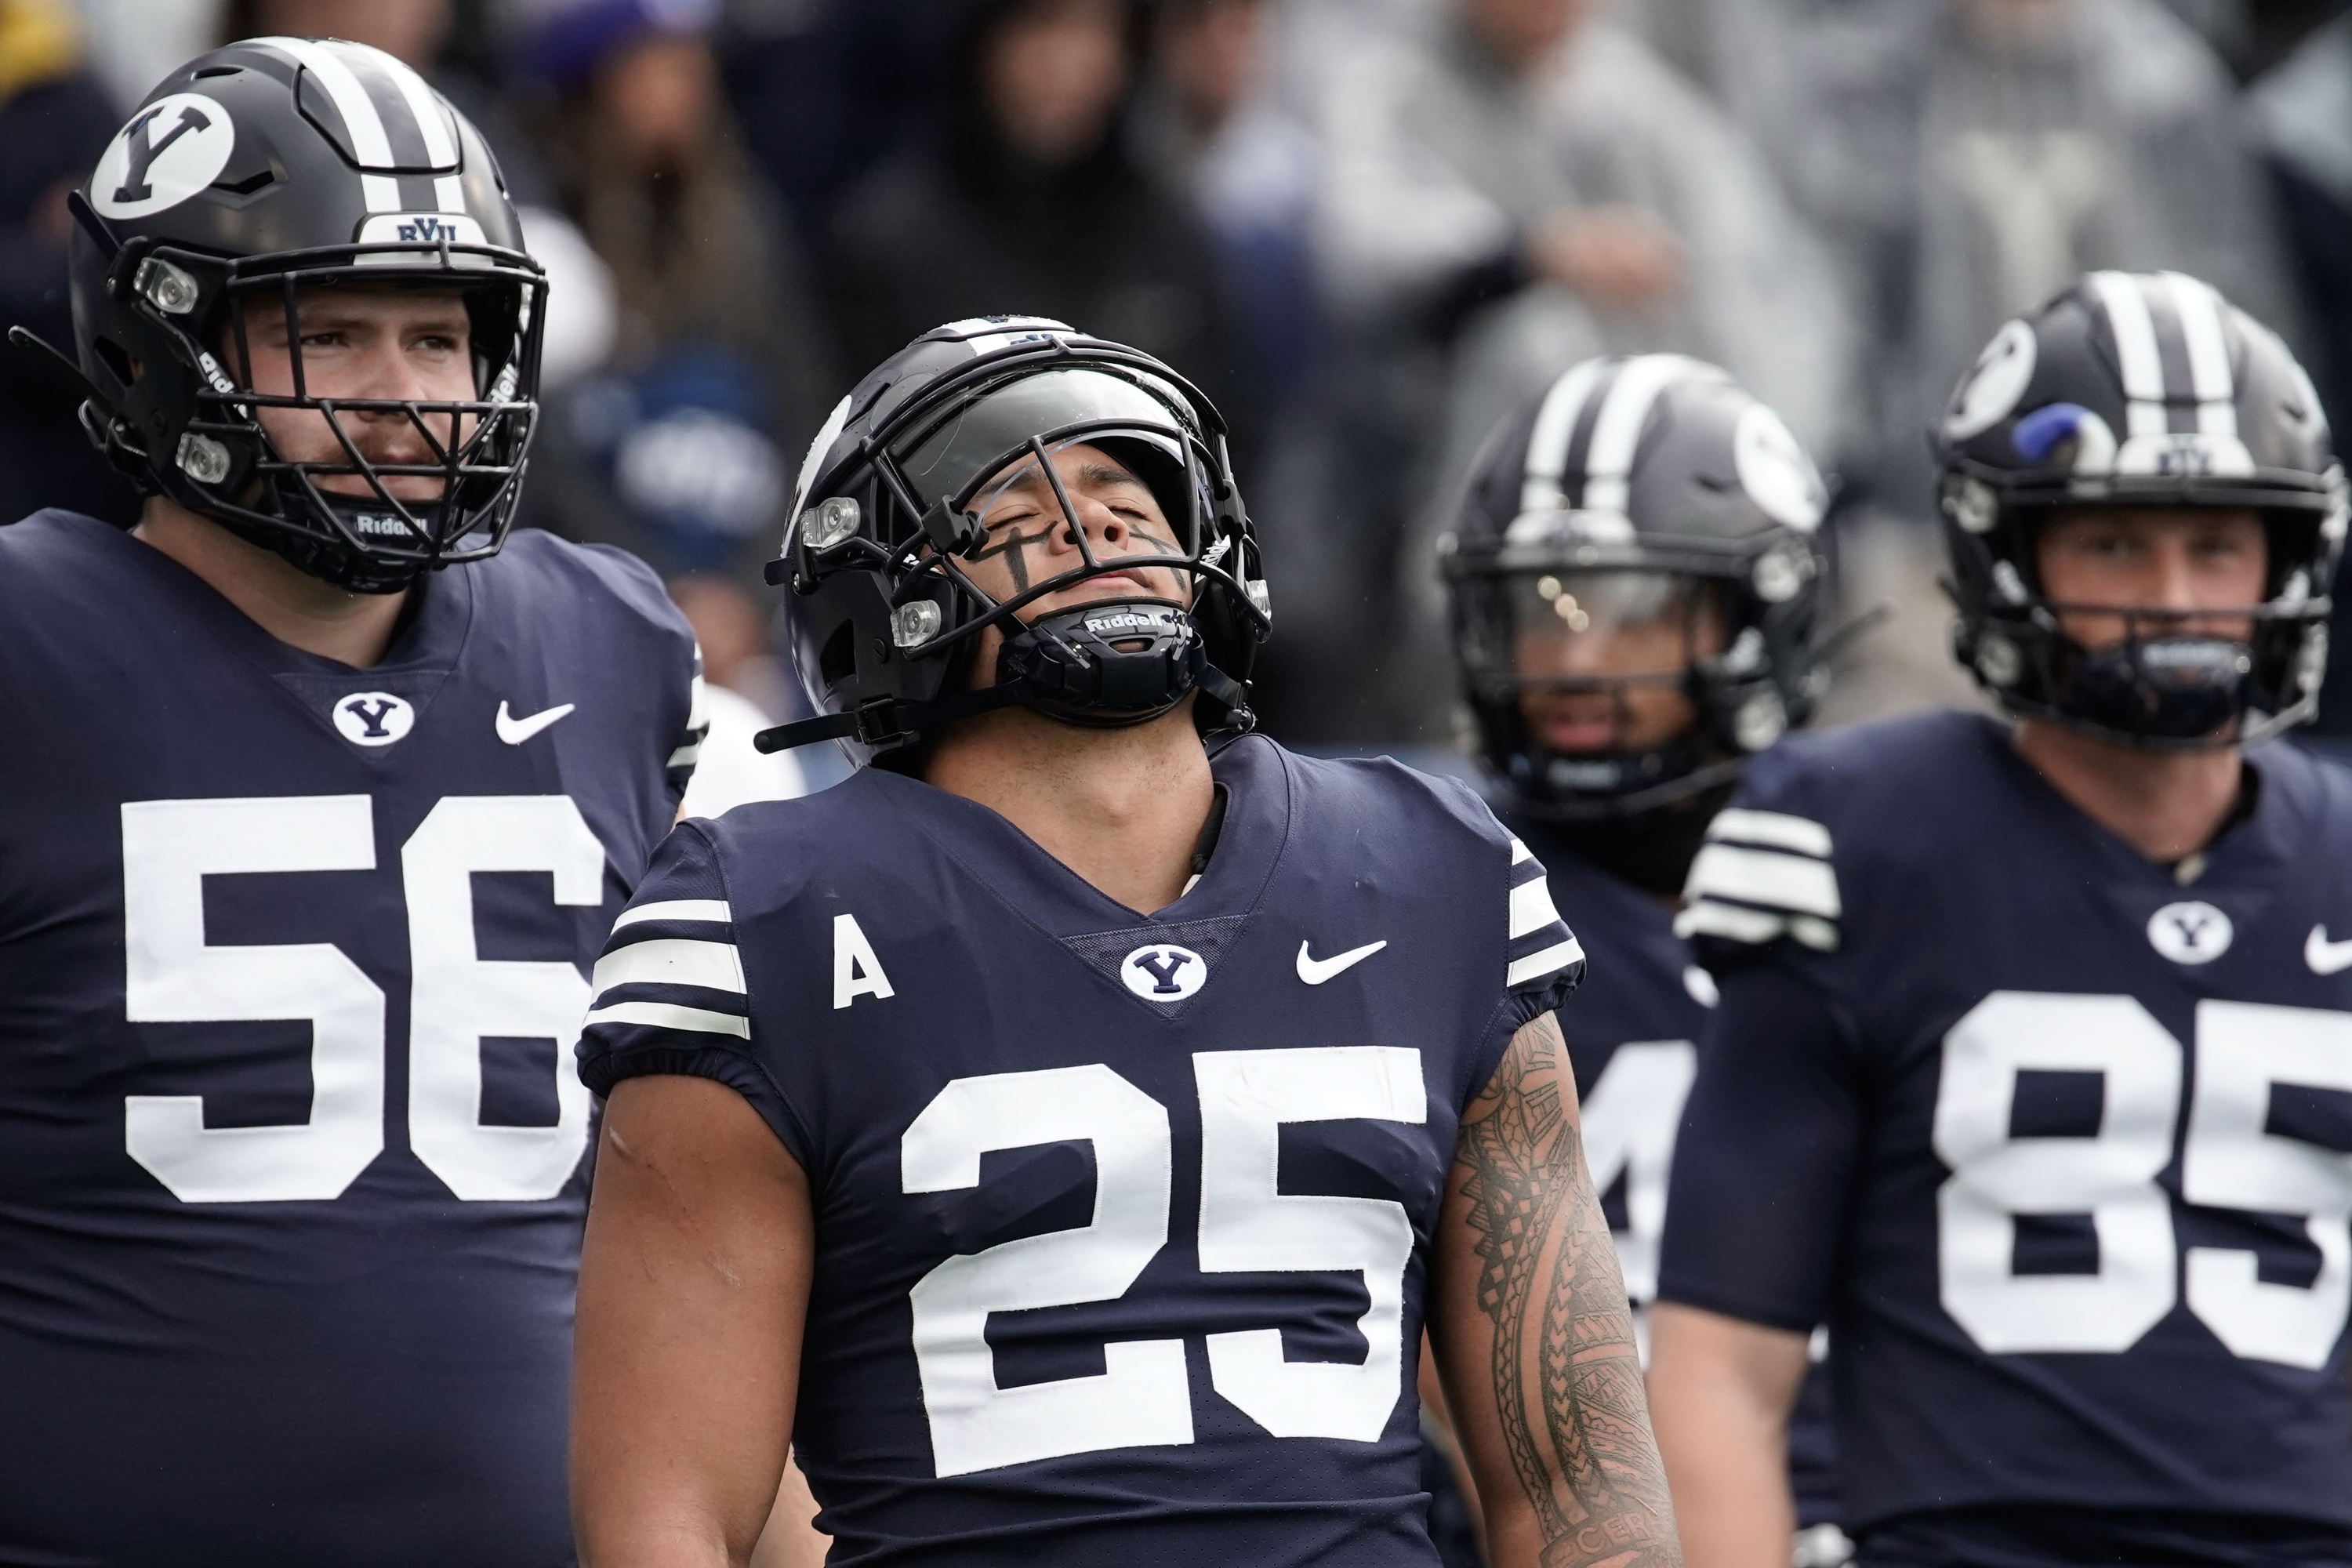 Brigham Young running back Tyler Allgeier (25) close his his eyes as he warms up ahead of an NCAA college football game against Boise State at LaVell Edwards Stadium in Provo on Saturday, Oct. 9, 2021.